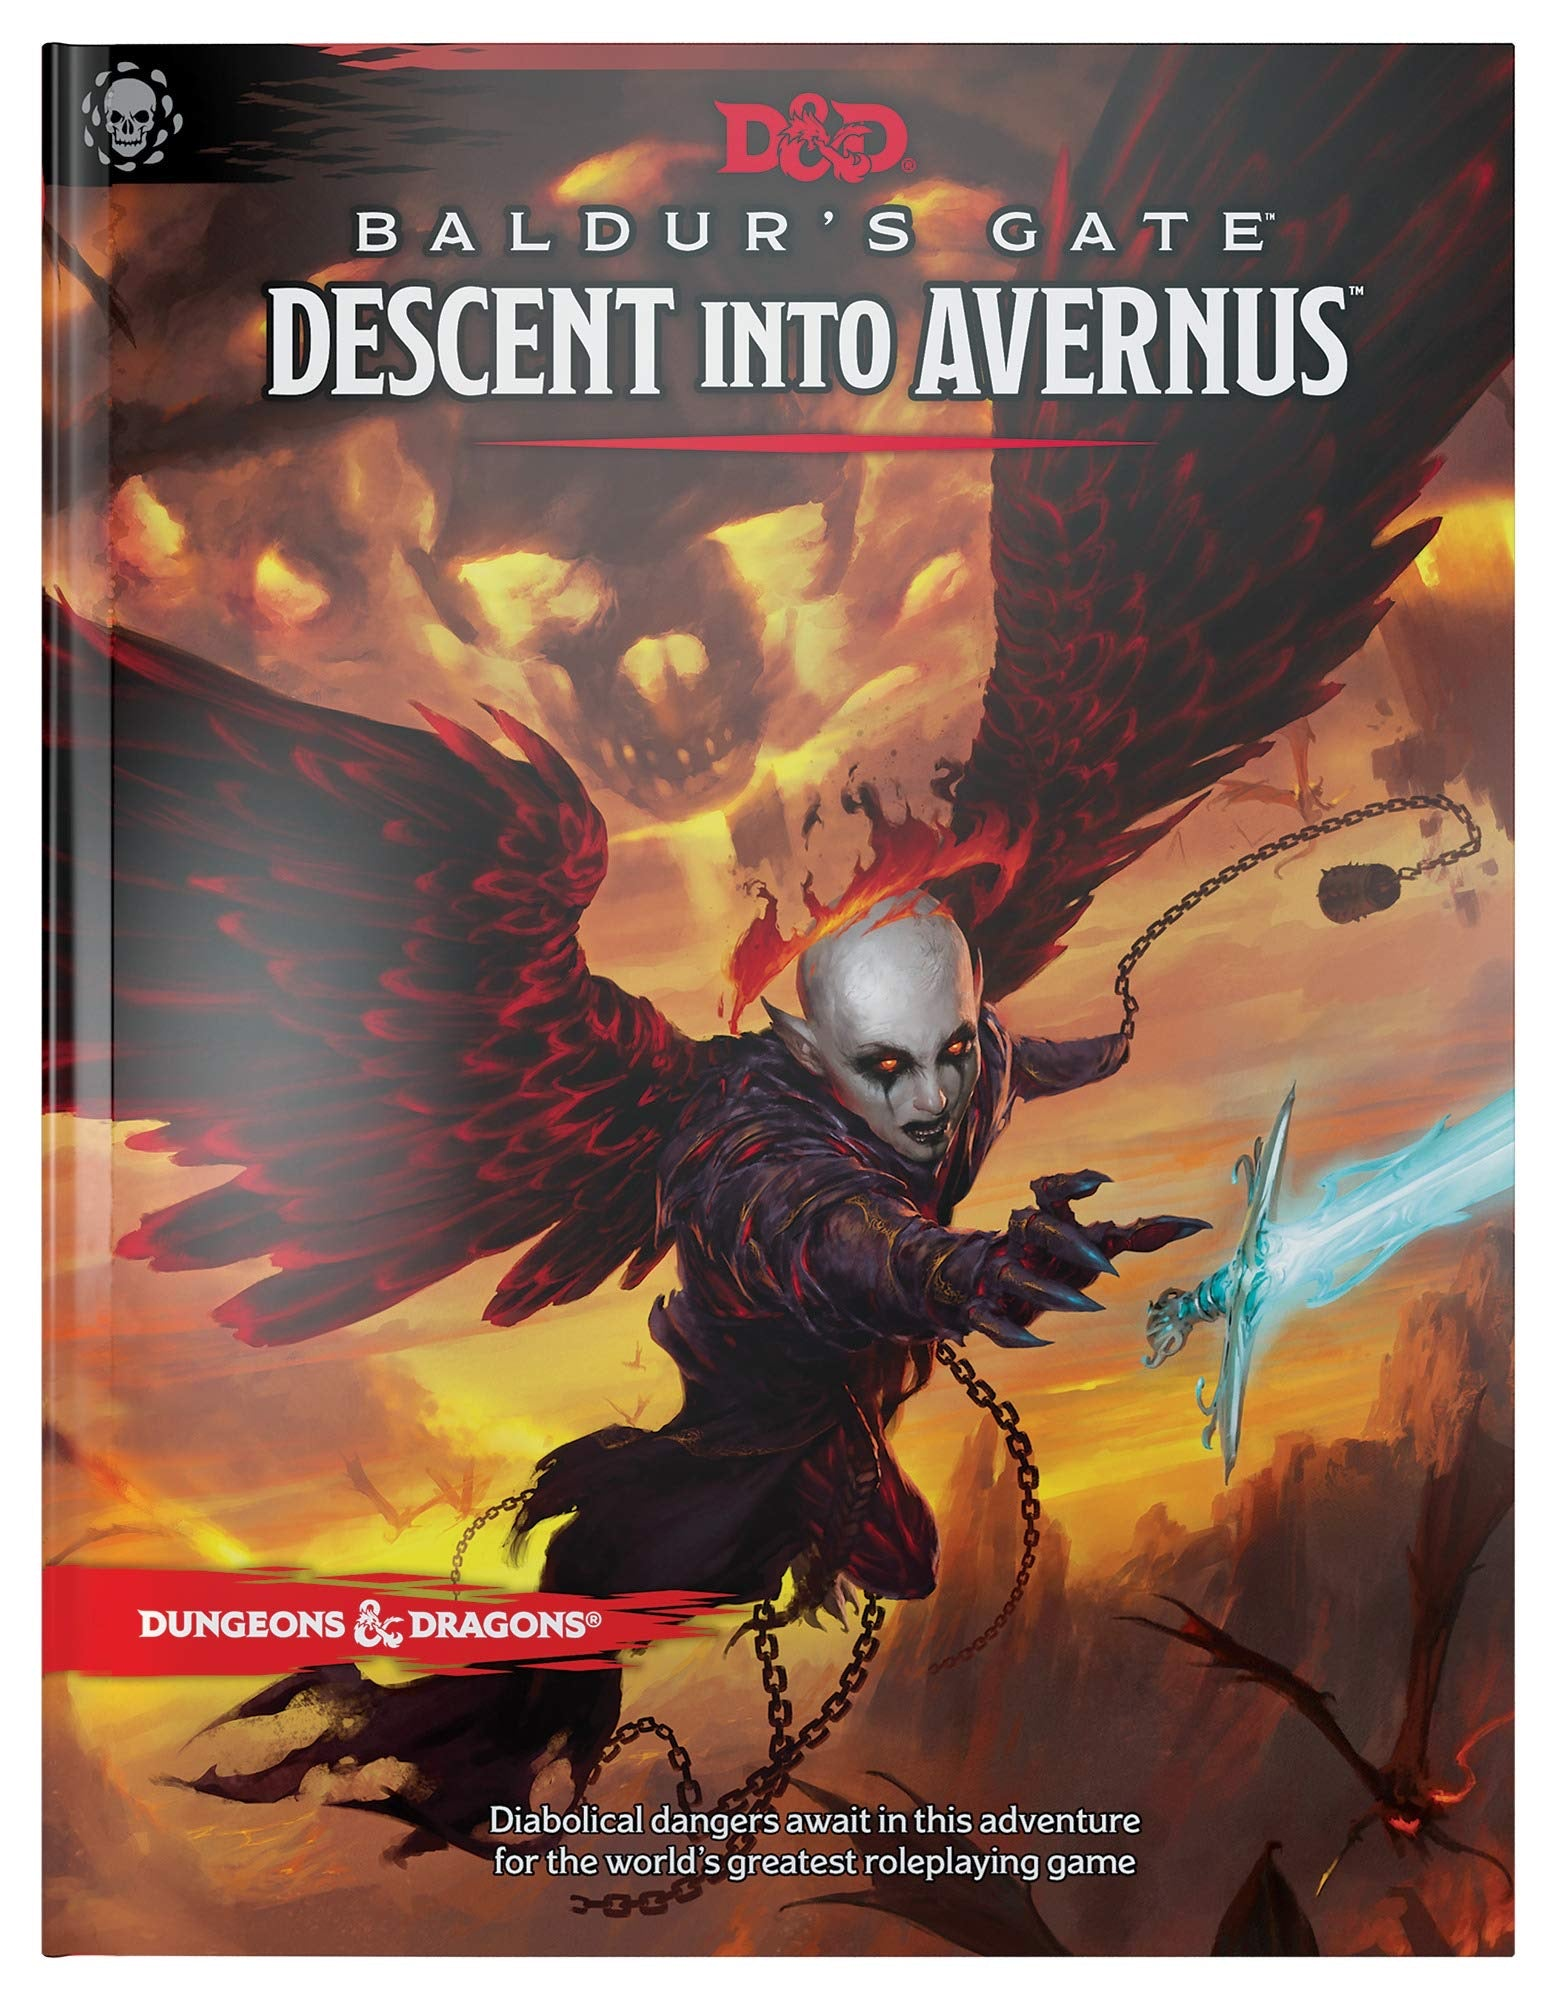 Baldur's Gate: Descent into Avernus (Dungeons & Dragons) | Rental